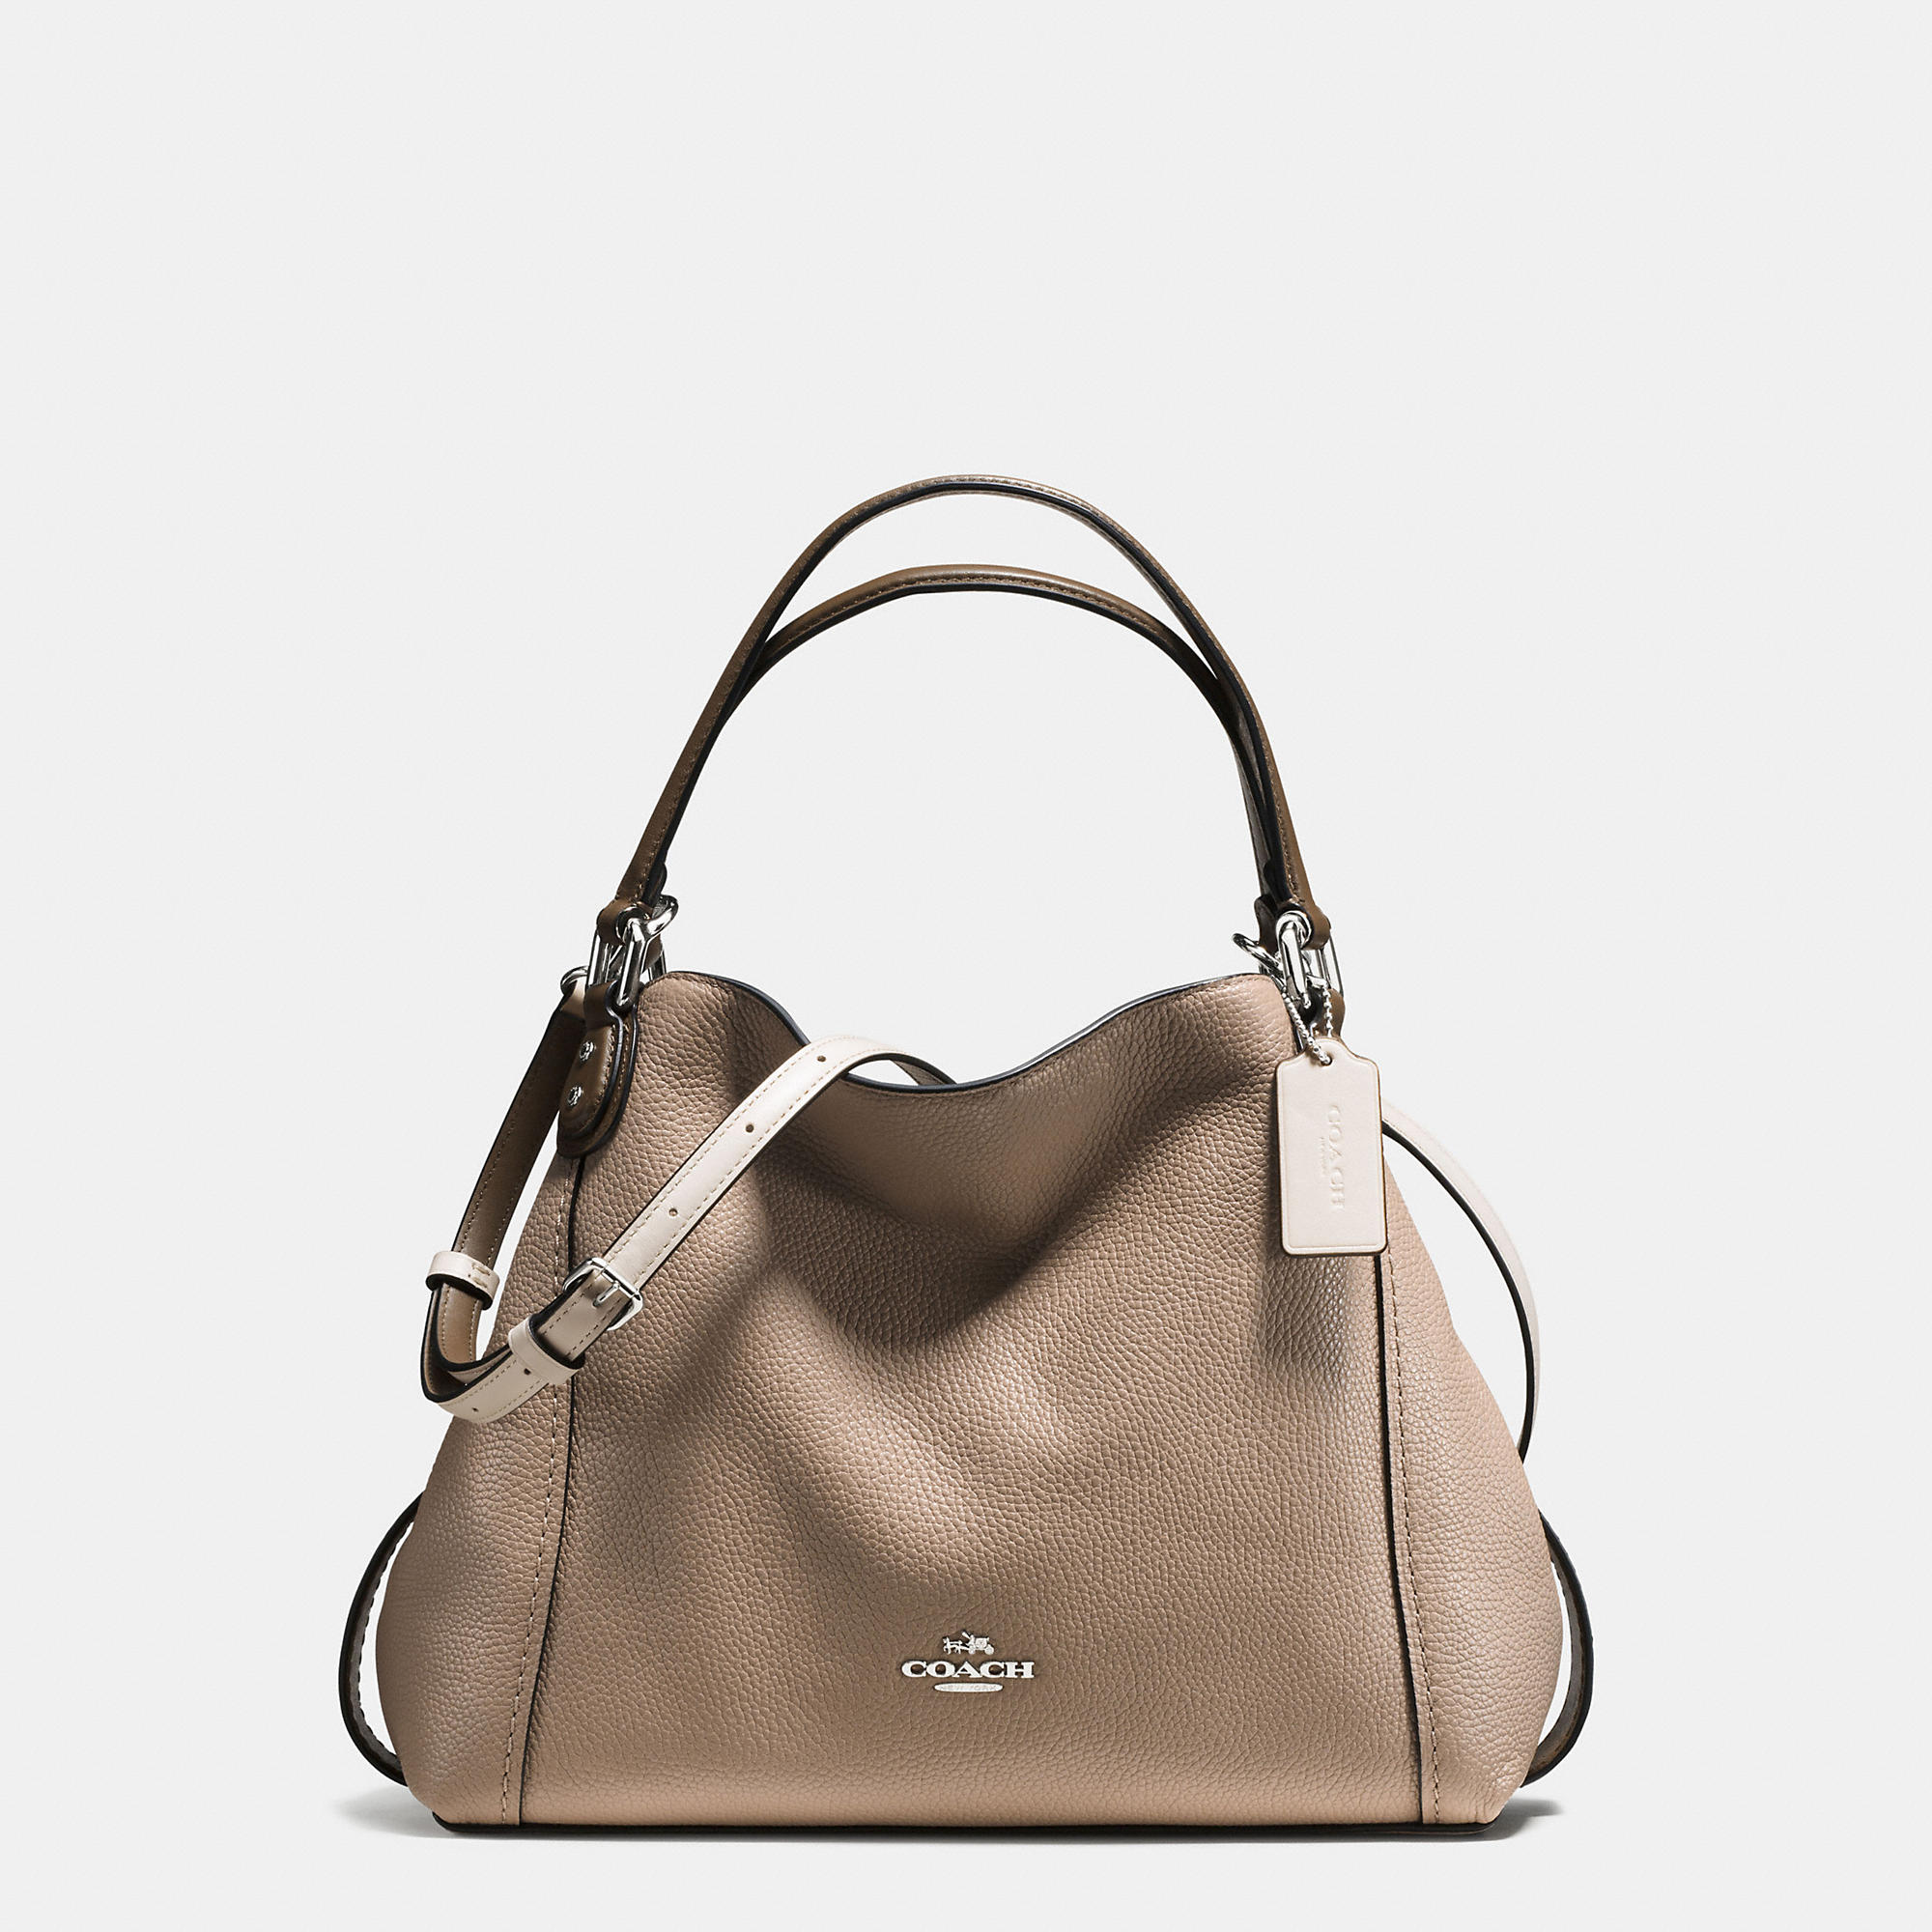 Coach Edie Shoulder Bag 28 In Colorblock Mixed Materials